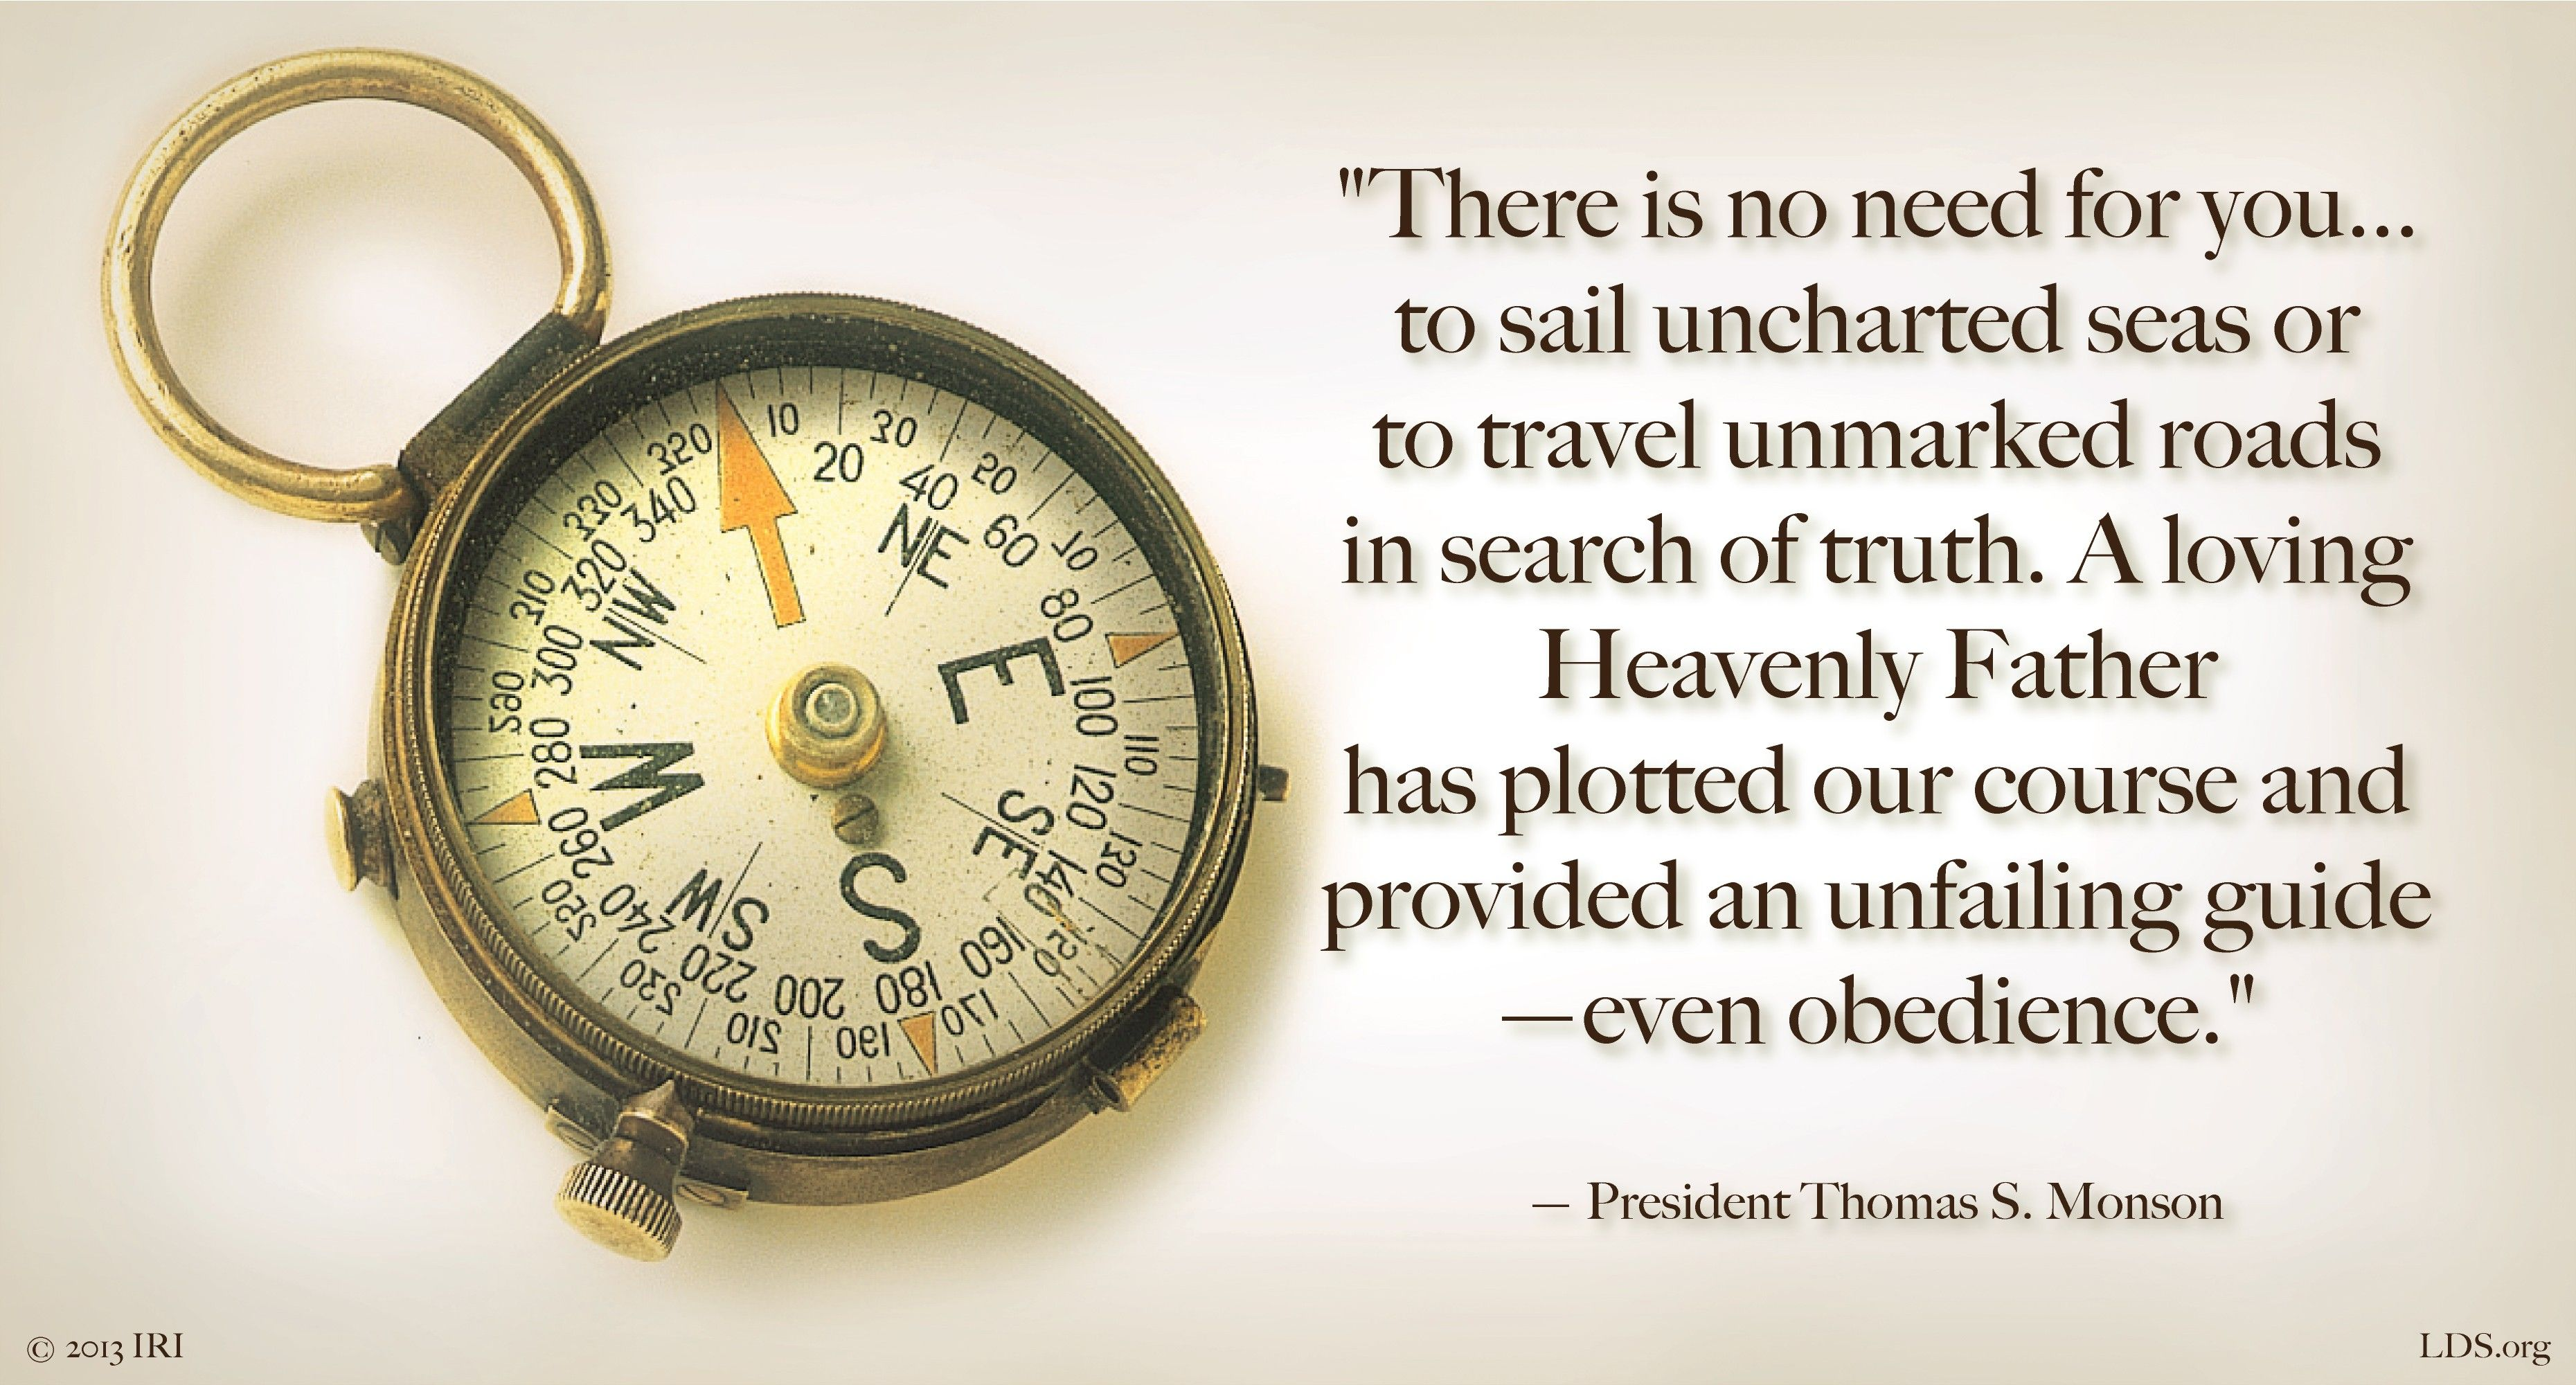 """""""There is no need for you … to sail uncharted seas or to travel unmarked roads in search of truth. A loving Heavenly Father has plotted our course and provided an unfailing guide—even obedience.""""—President Thomas S. Monson, """"Obedience Brings Blessings"""""""